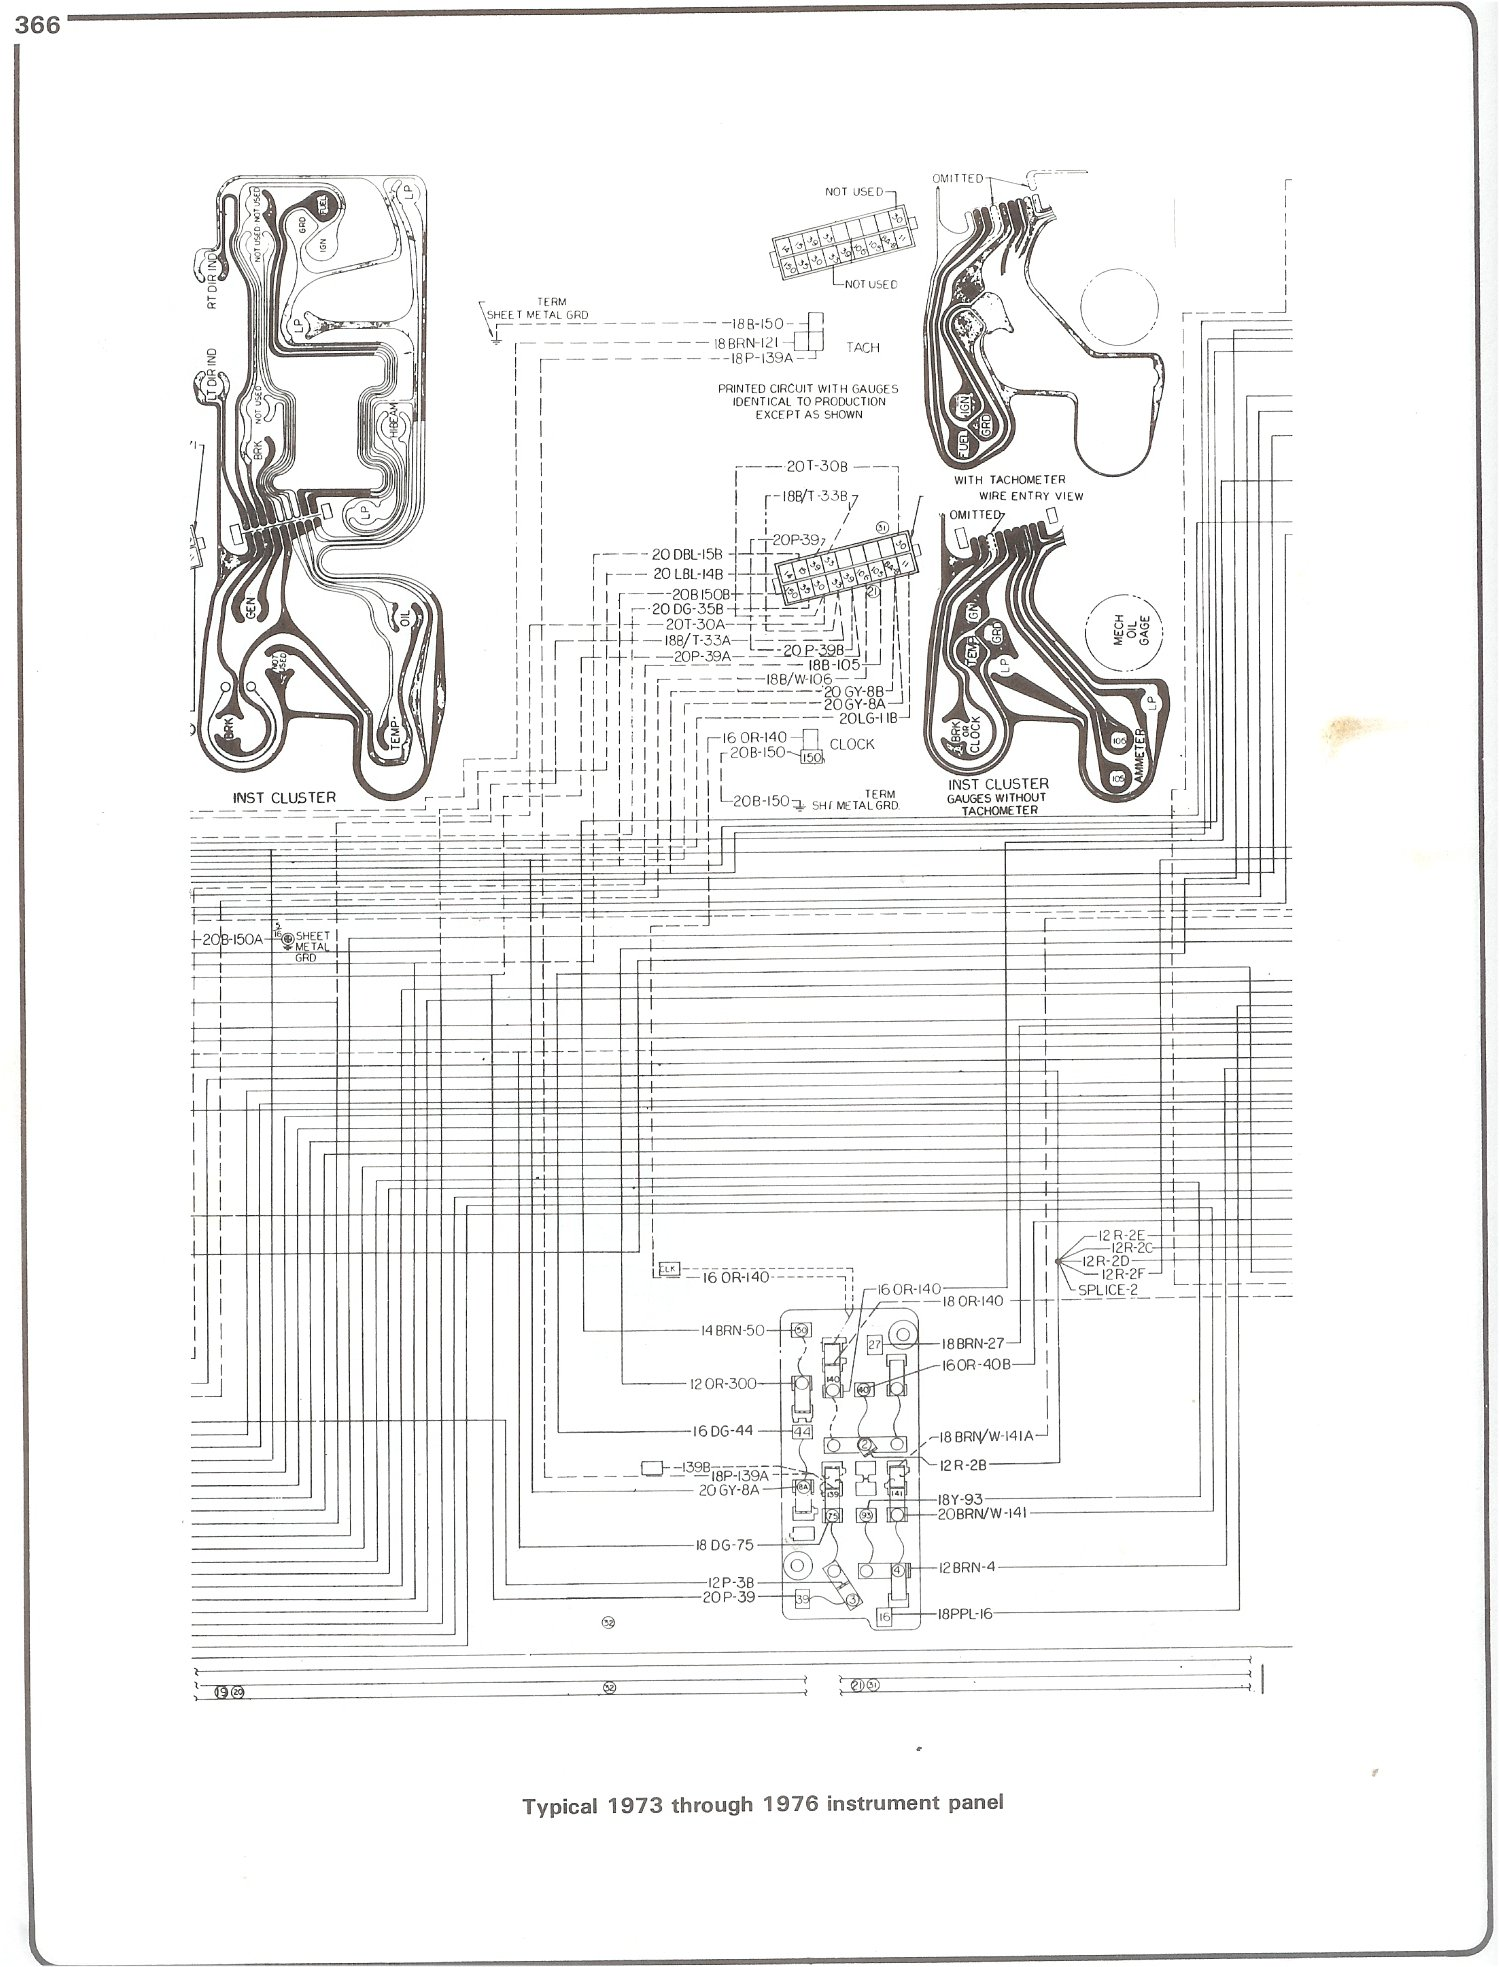 86 Chevy Fuel Gauge Wiring - Wiring Diagram Update on chevy fuel pump wiring diagram, 1986 chevy truck fuel tank wiring diagram, chevy fuel sender wiring diagram, 2004 harley-davidson fuel tank wiring diagram, chevy fuel gauge troubleshooting, chevy fuel gauge circuit, chevy dual tank fuel wiring diagram, chevy fuel line wiring diagram, fuel sending unit wiring diagram,